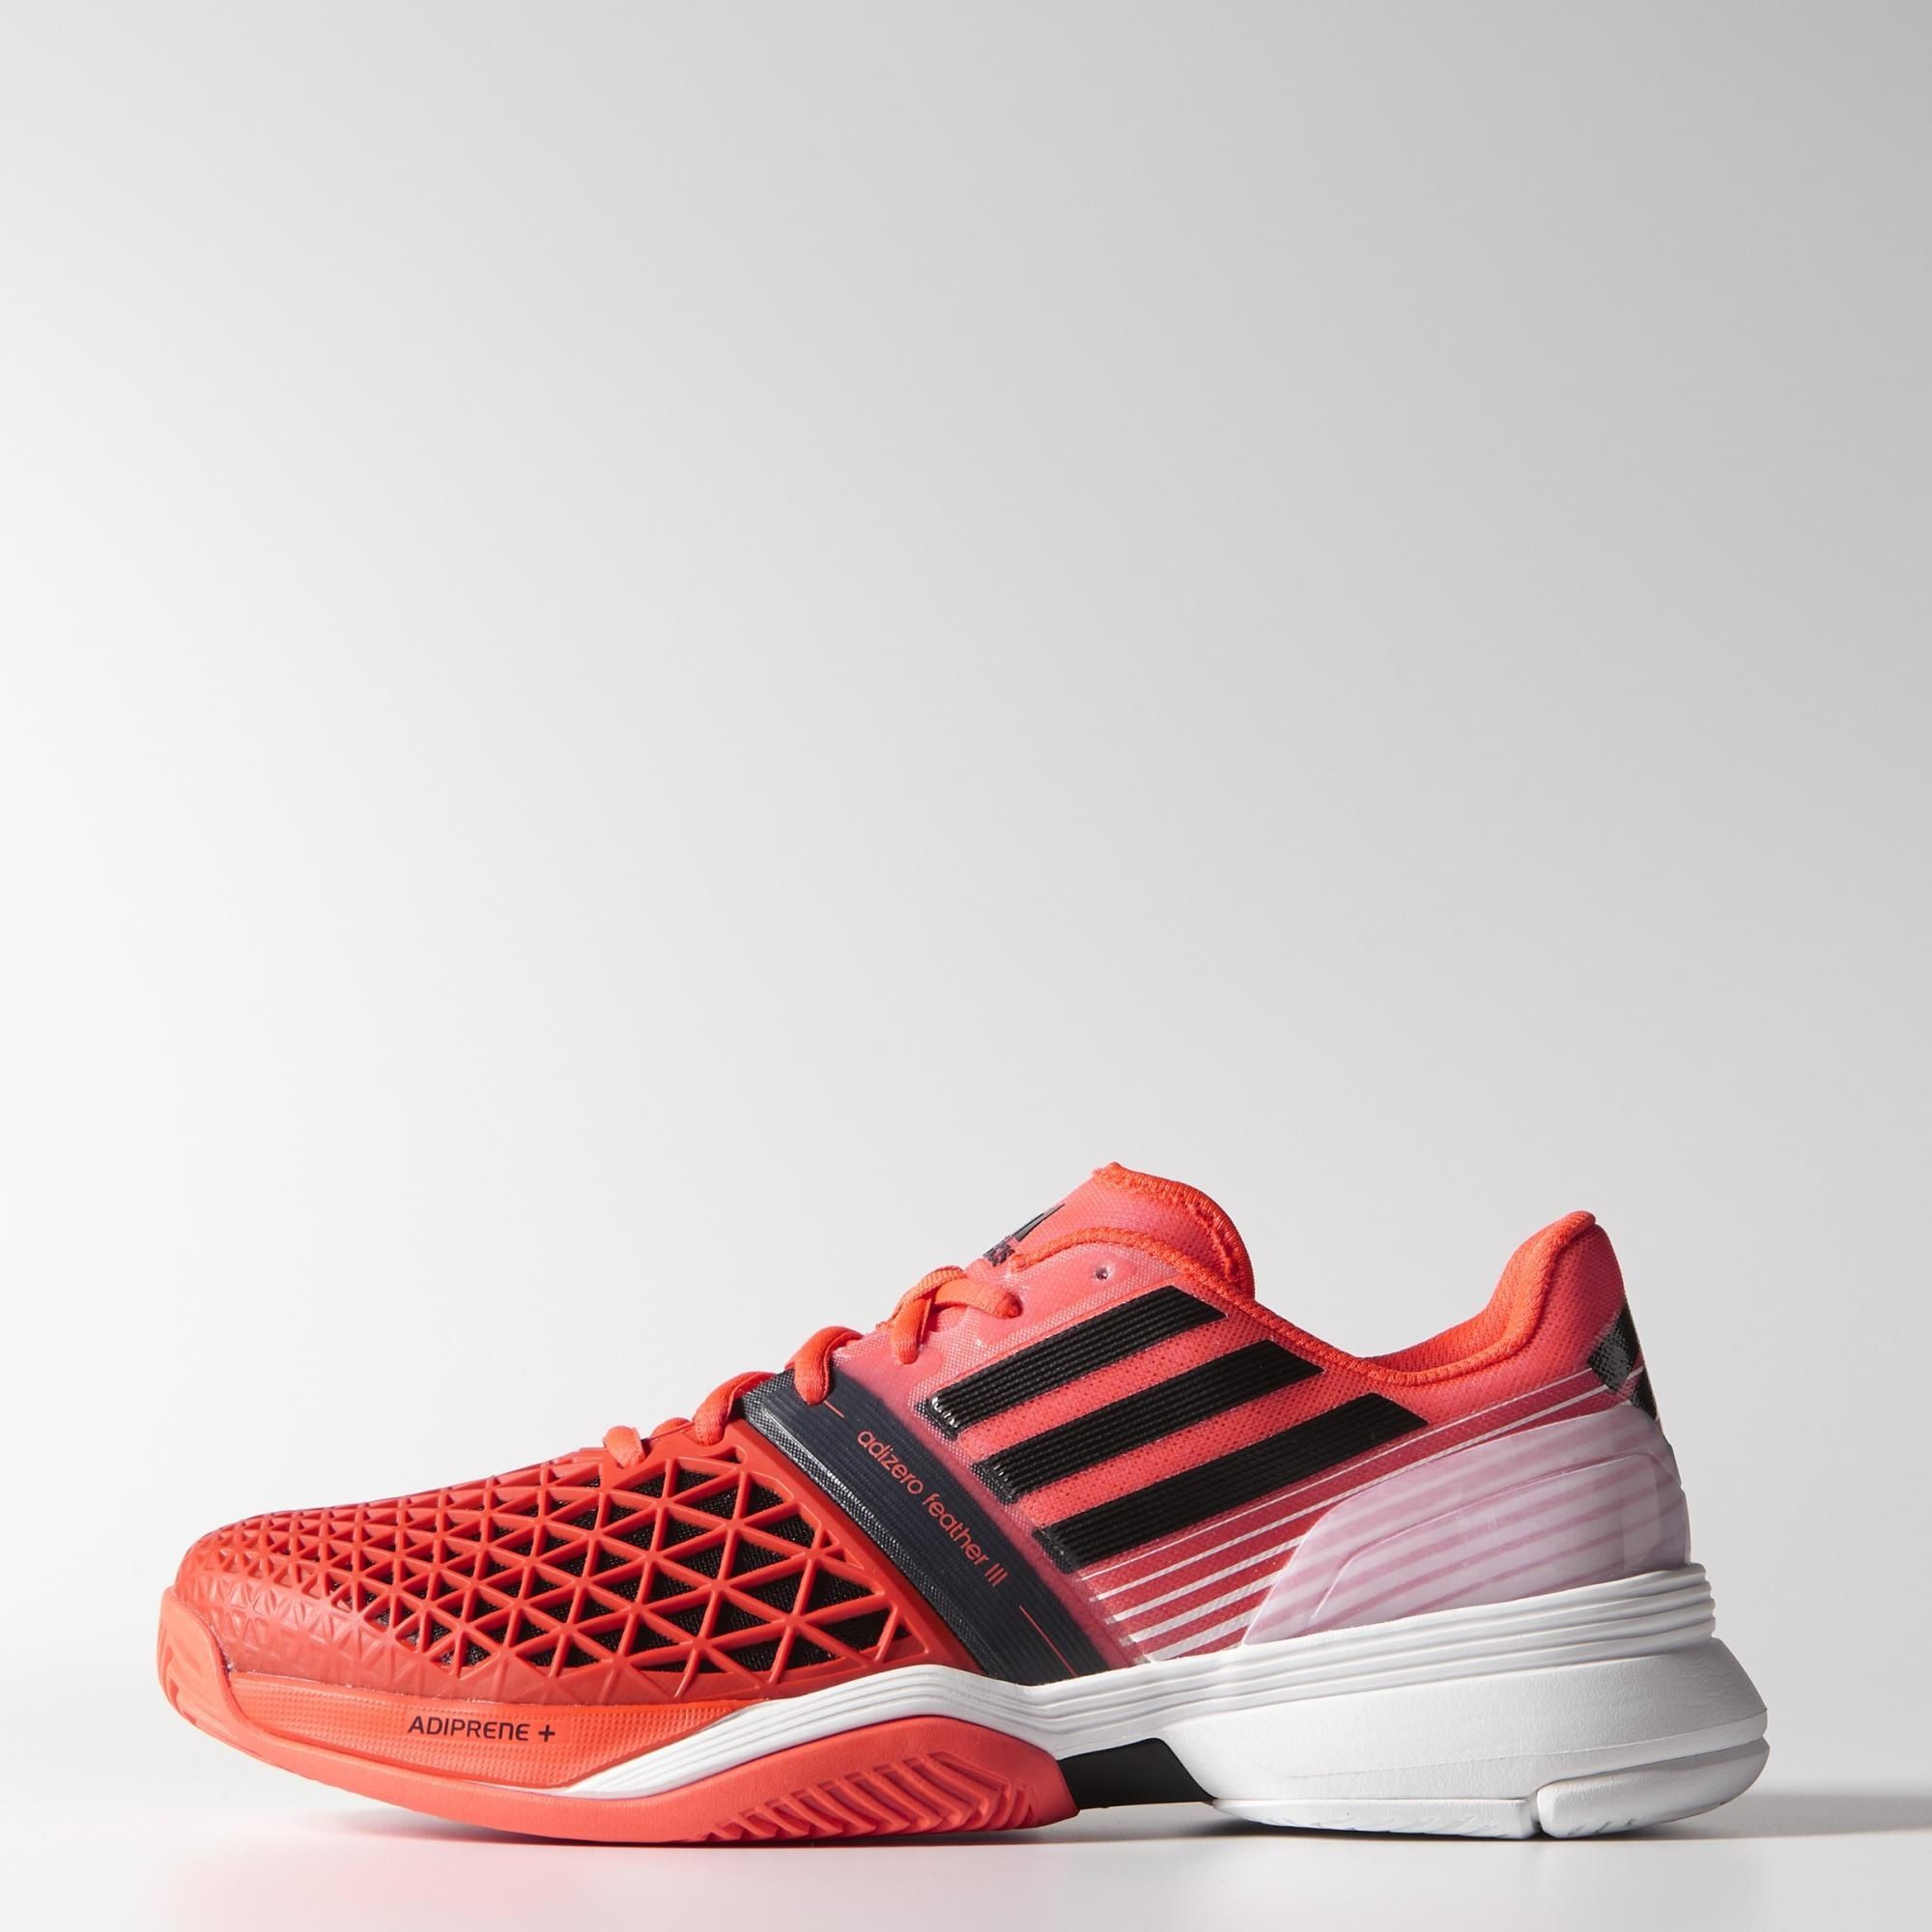 0cee87036 adidas sport clothing adidas factory outlet prices